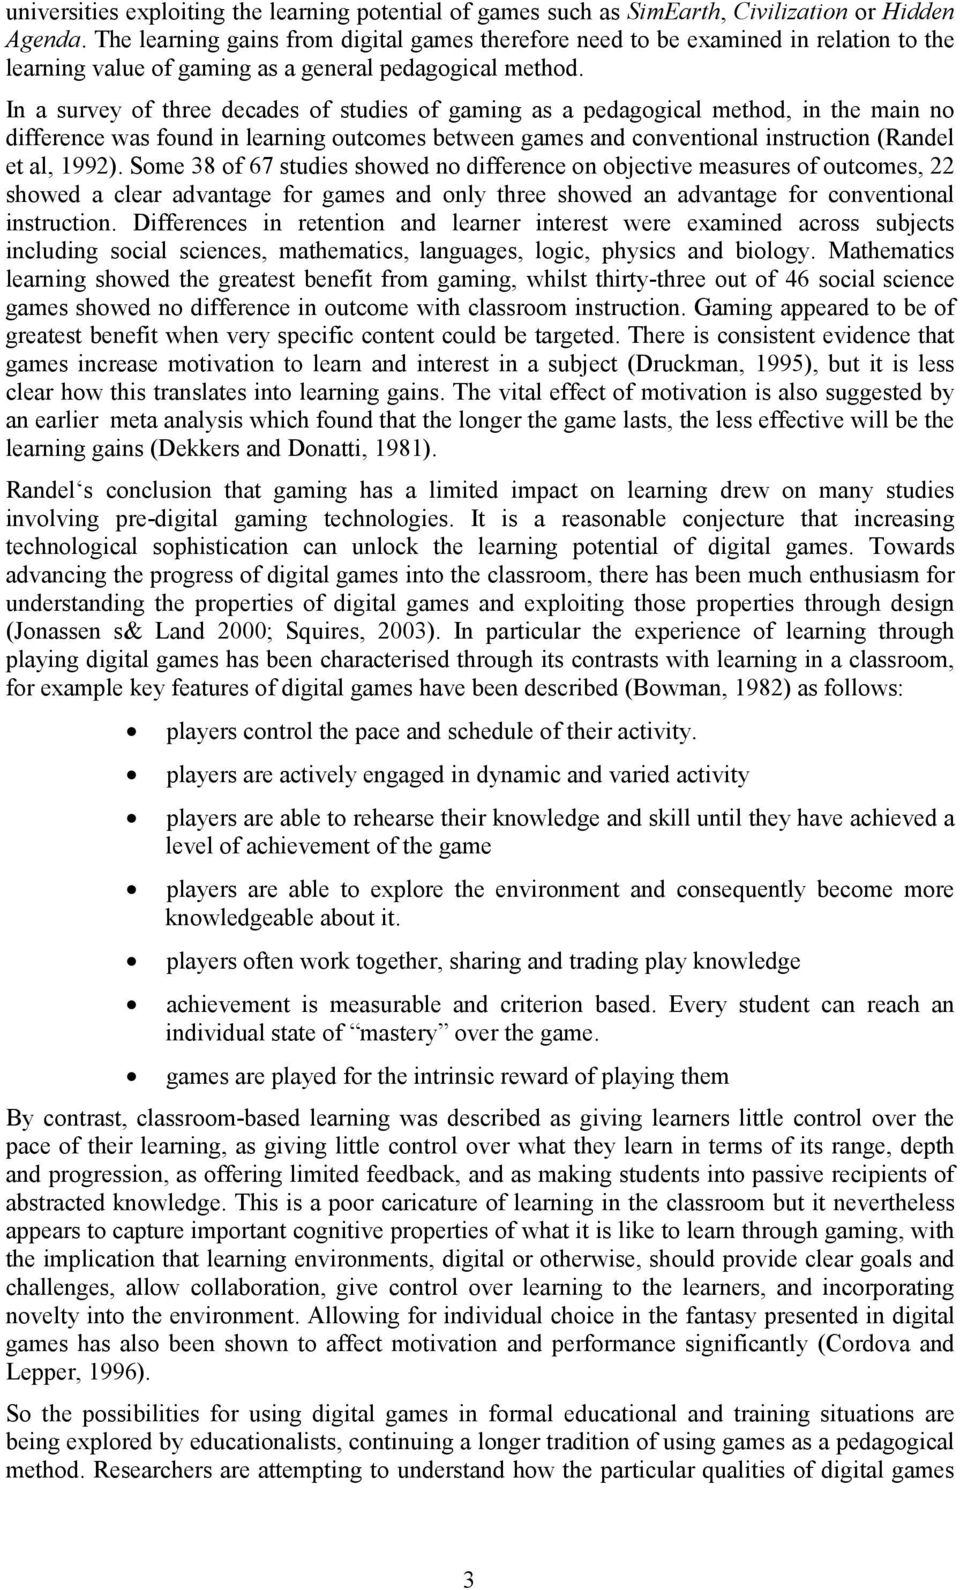 In a survey of three decades of studies of gaming as a pedagogical method, in the main no difference was found in learning outcomes between games and conventional instruction (Randel et al, 1992).